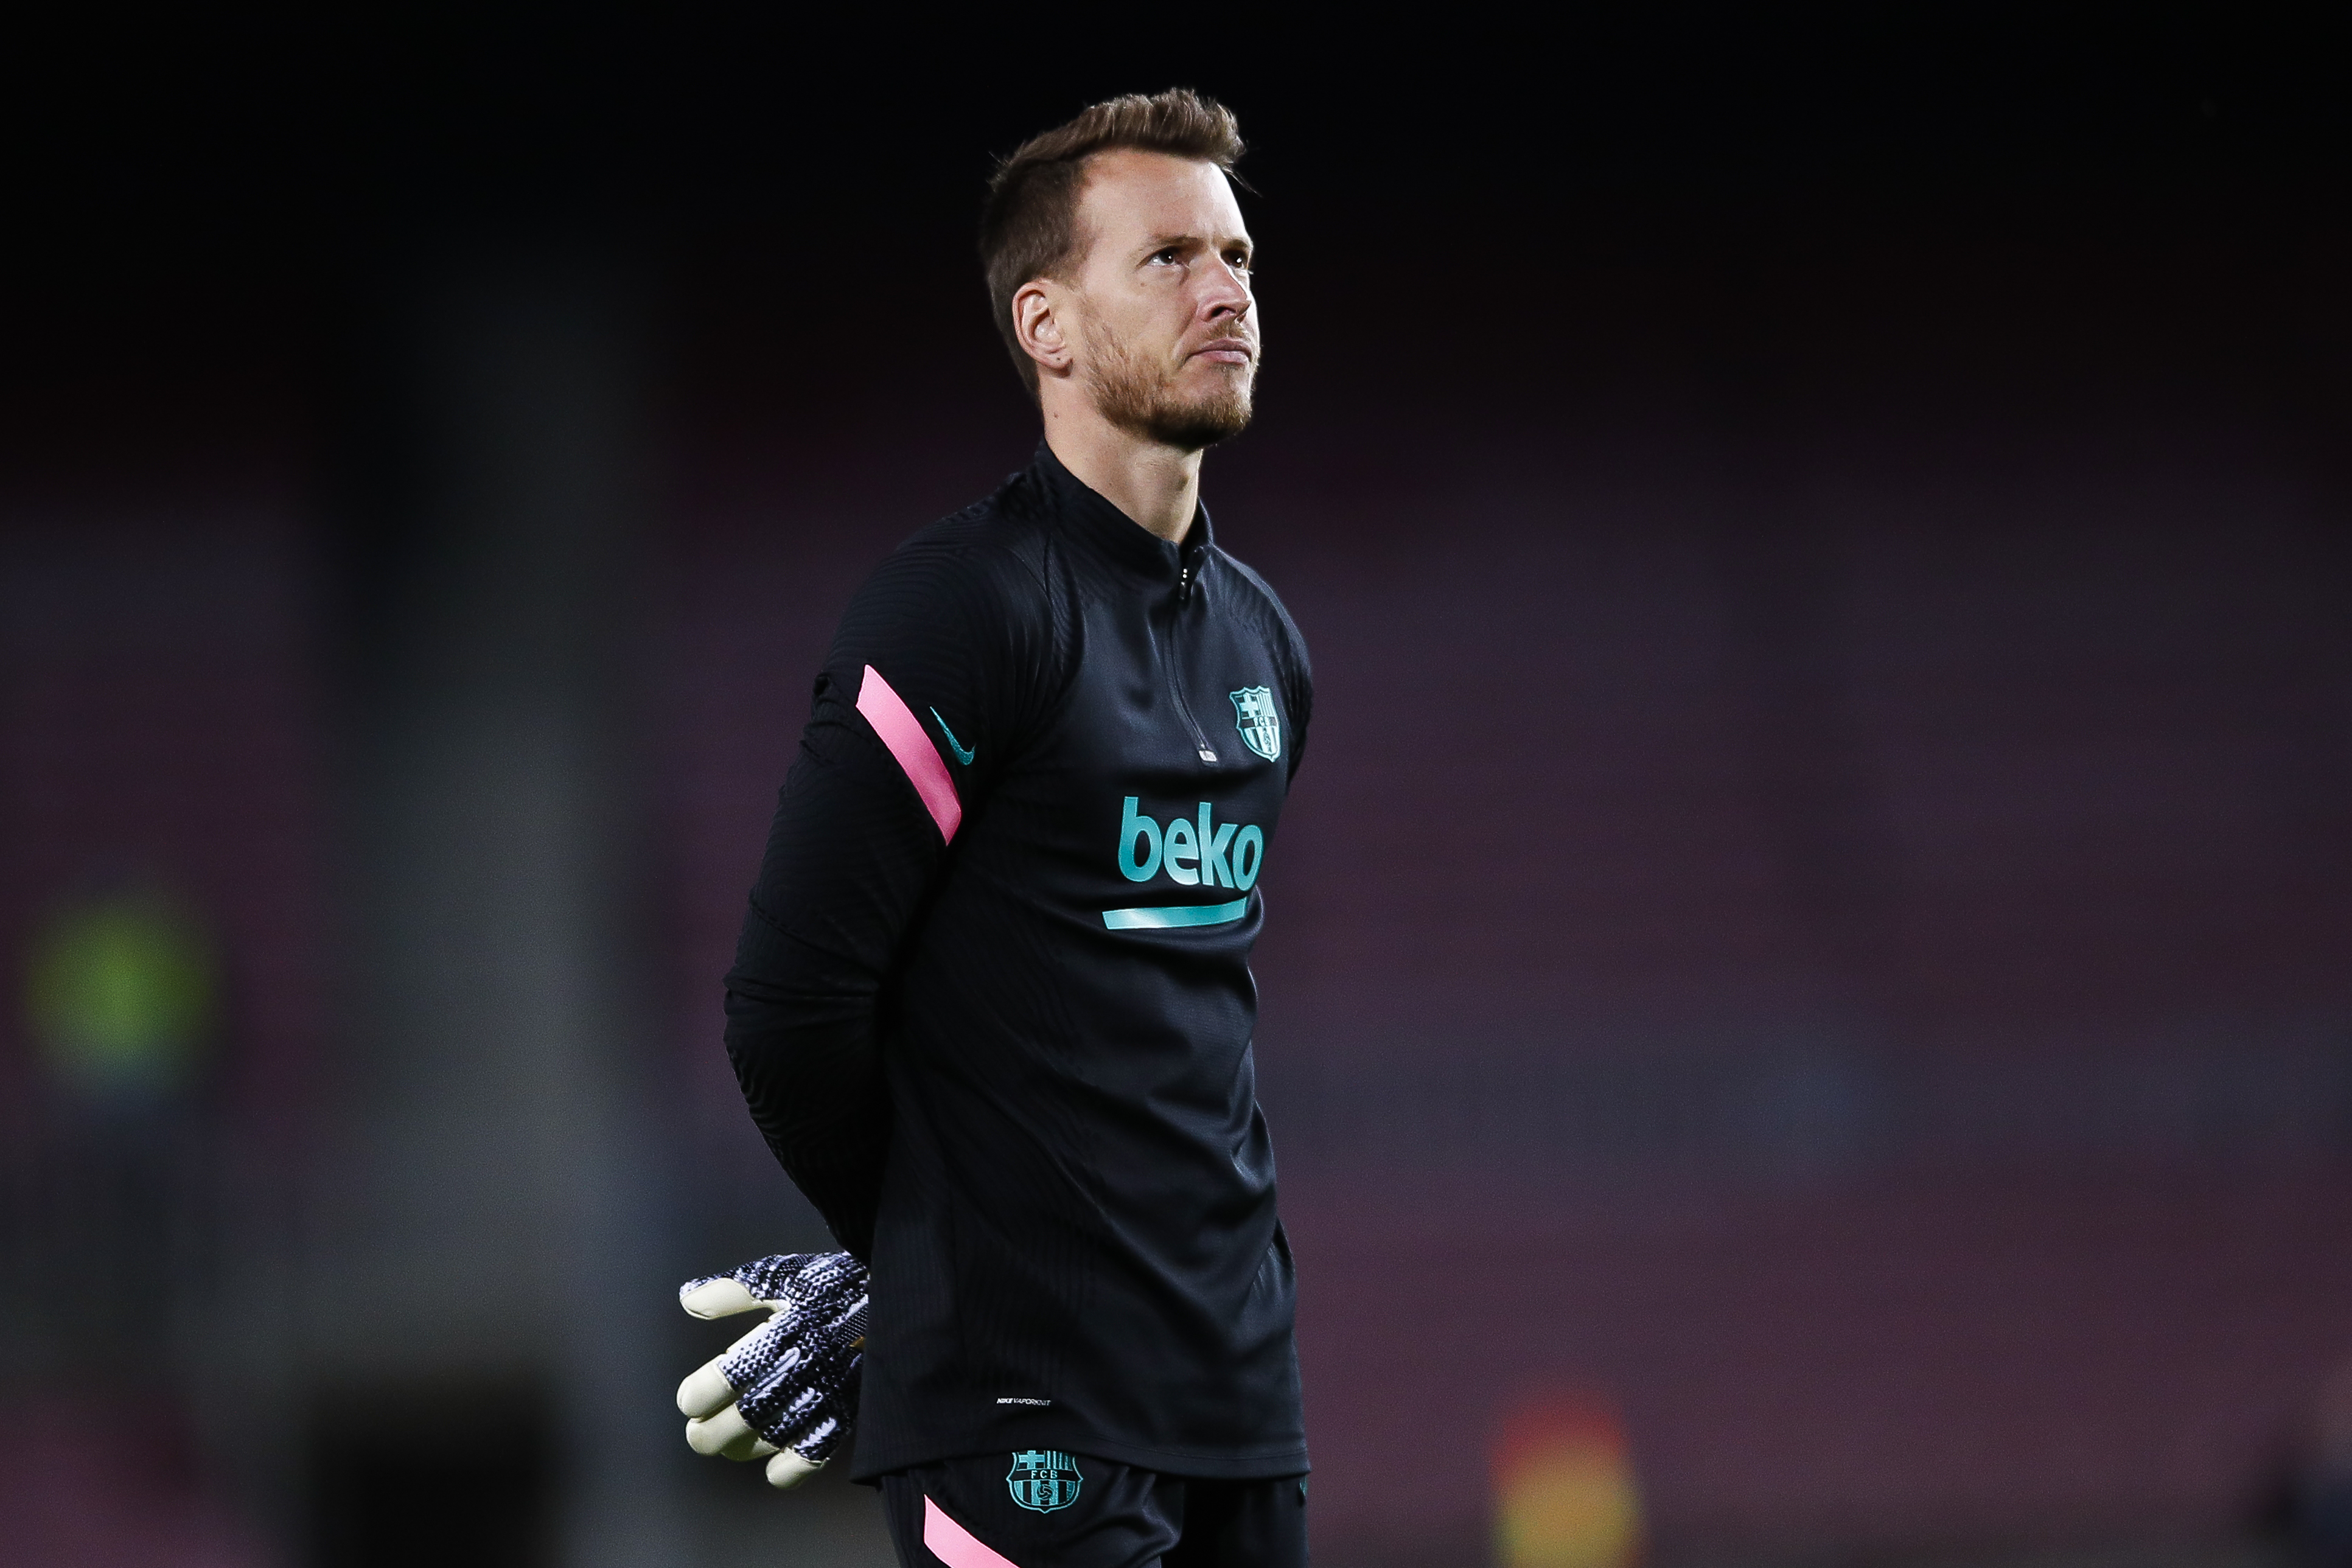 Barcelona set €15m asking price for Neto who is seen in the photo